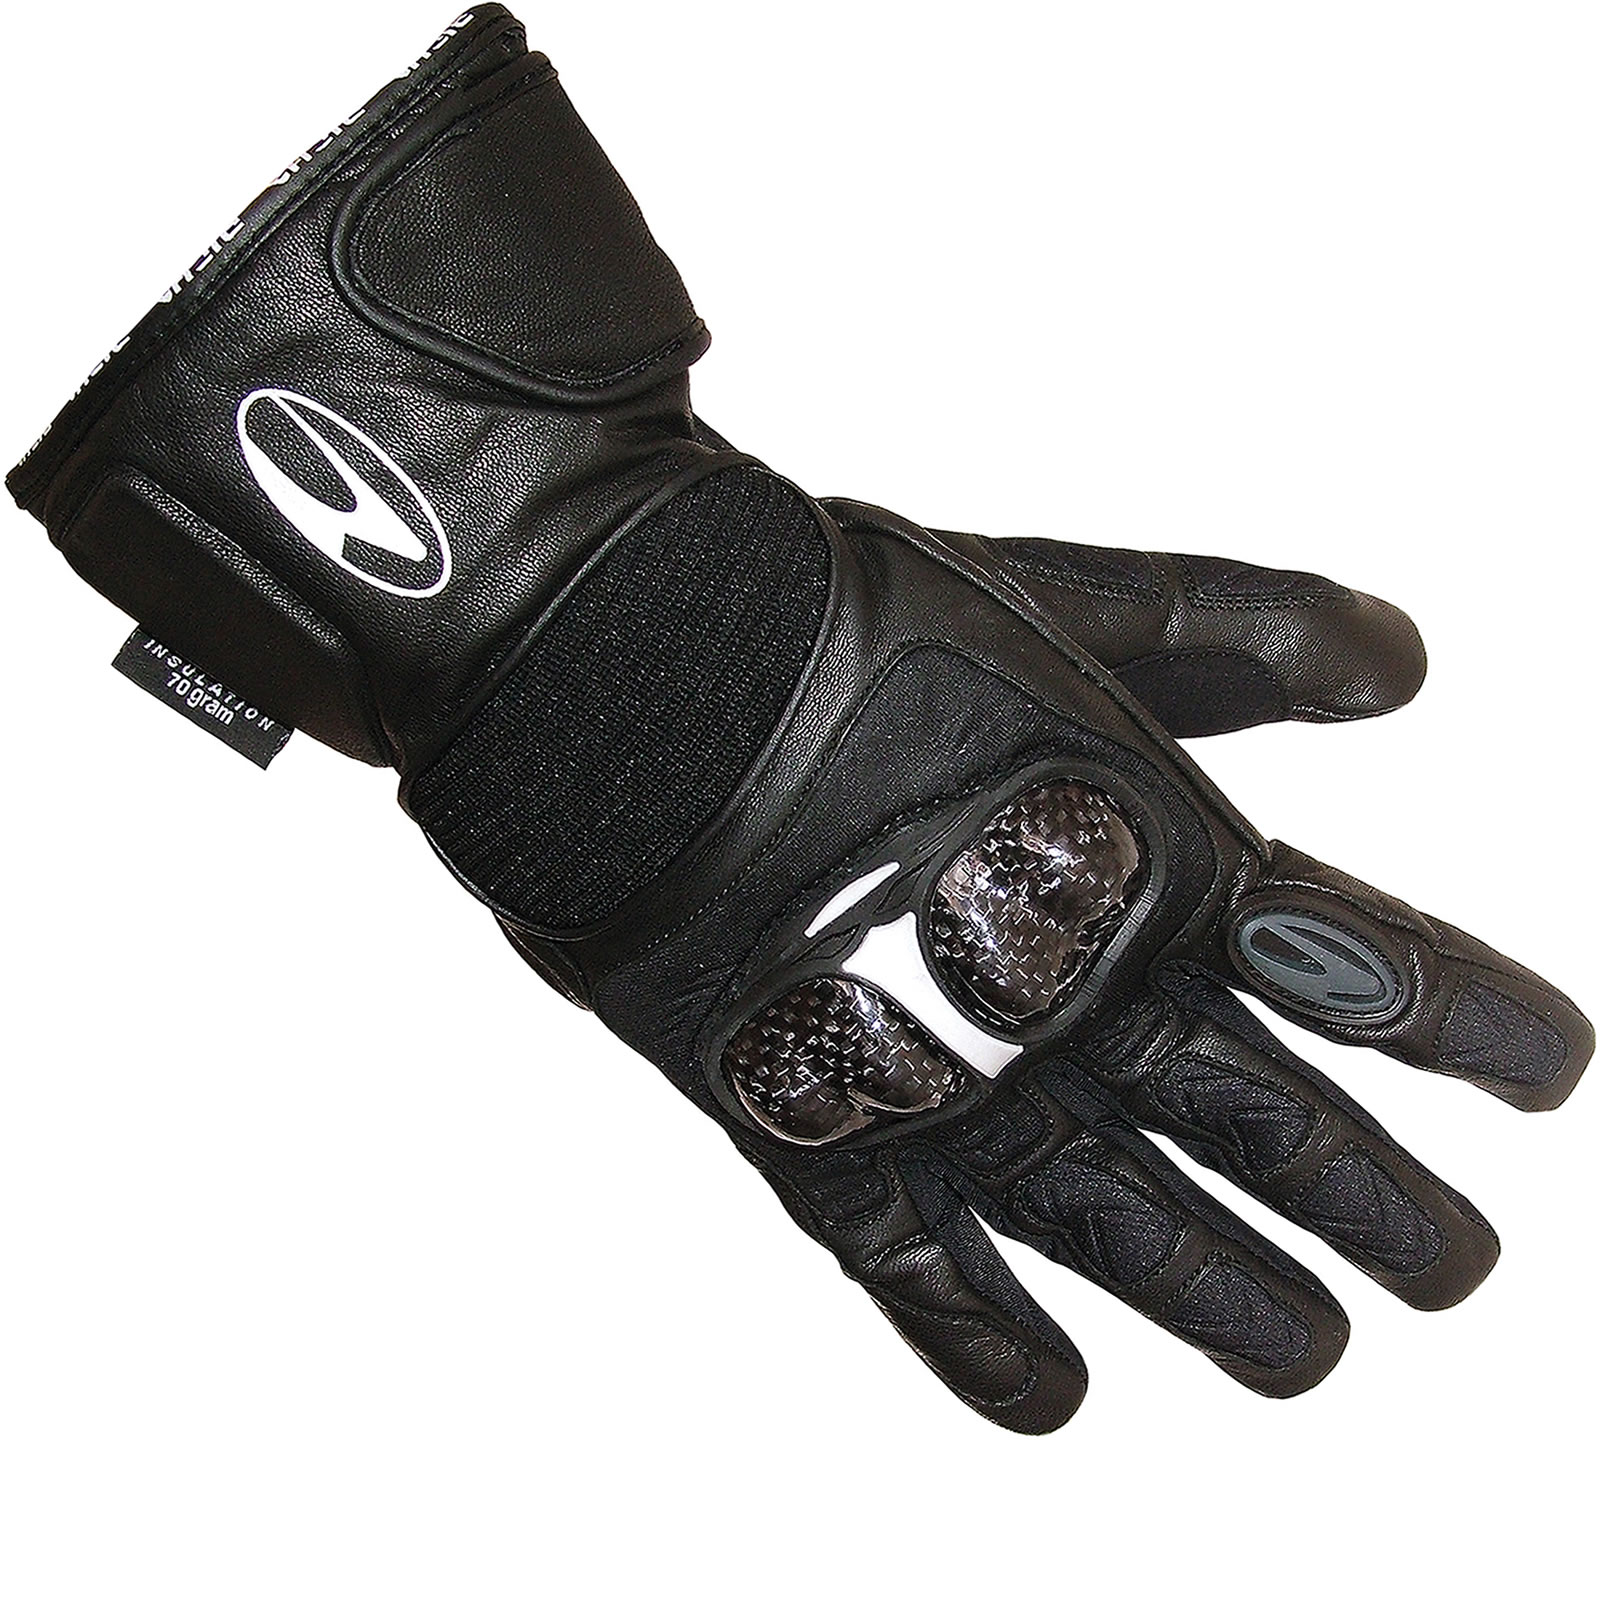 Motorcycle gloves richa - Richa Atlantic Leather Motorcycle Gloves